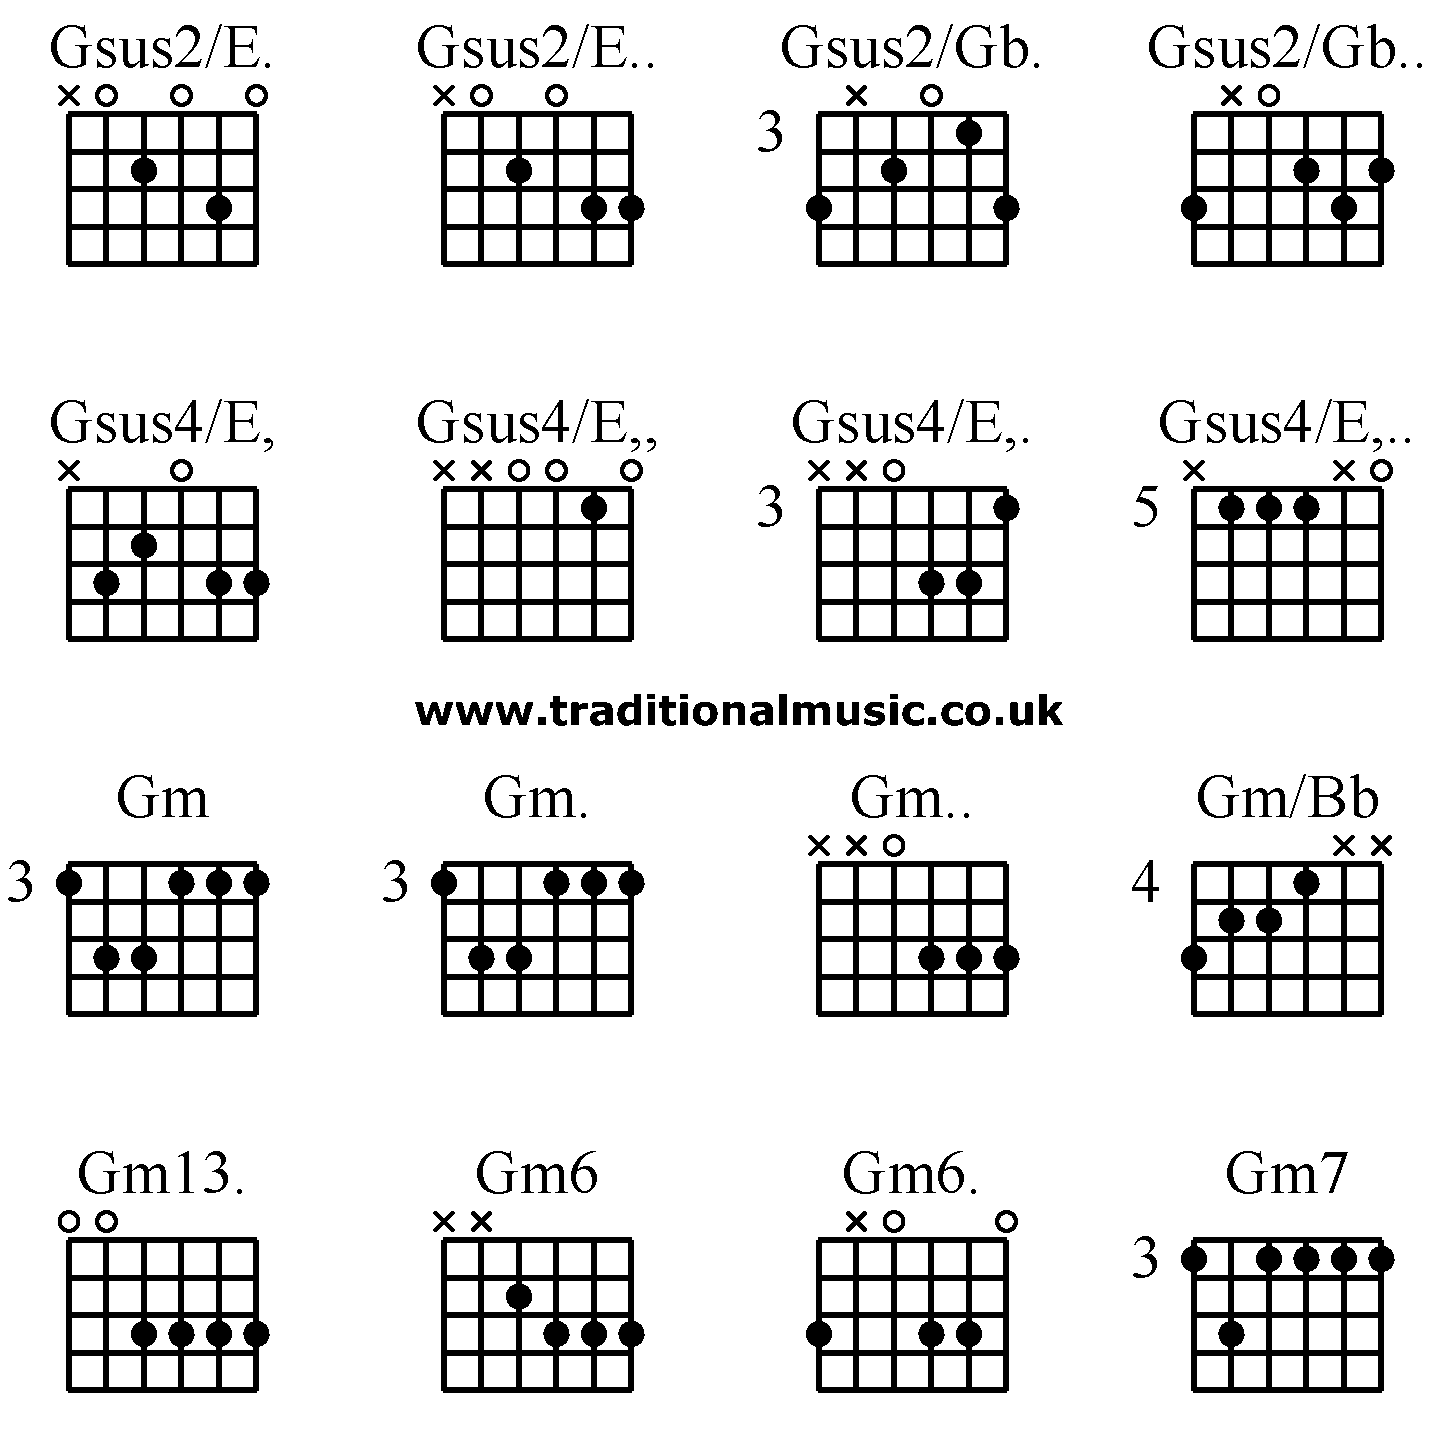 Gm Guitar Chord Easy Related Keywords u0026 Suggestions - Gm Guitar Chord Easy Long Tail Keywords